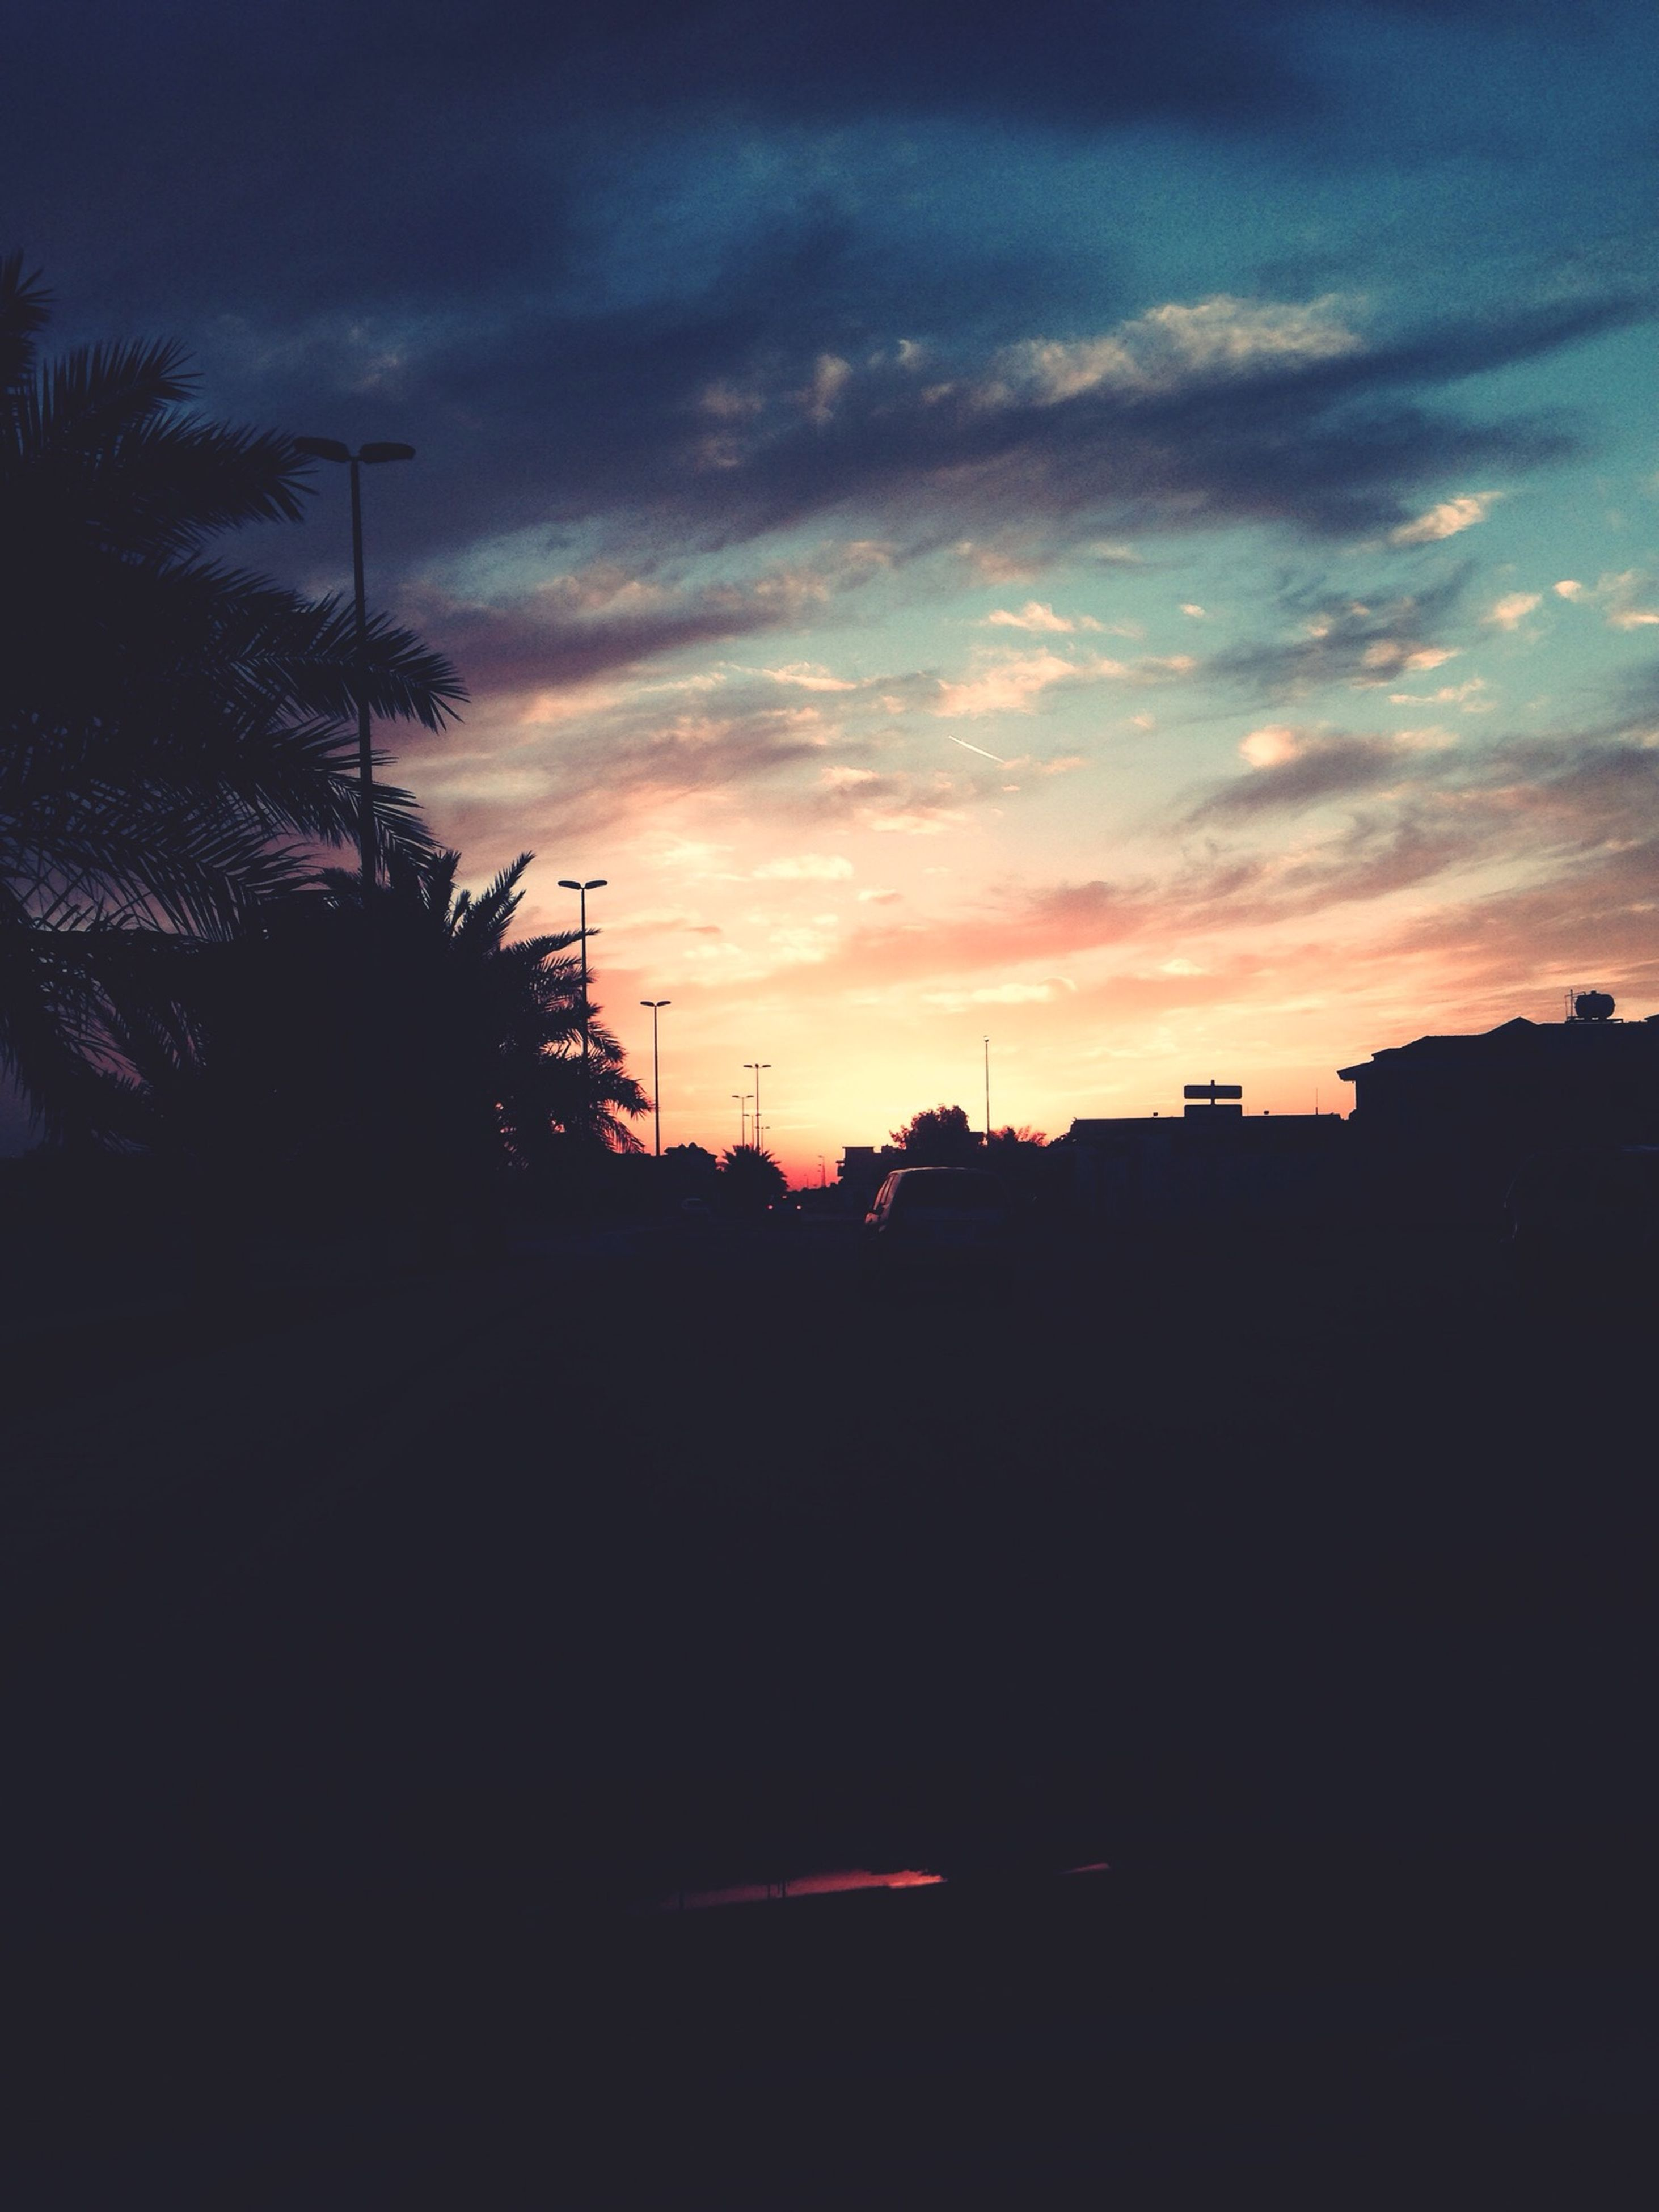 sunset, silhouette, sky, building exterior, architecture, built structure, cloud - sky, orange color, tree, cloud, dark, city, house, dusk, beauty in nature, scenics, cloudy, residential structure, dramatic sky, nature